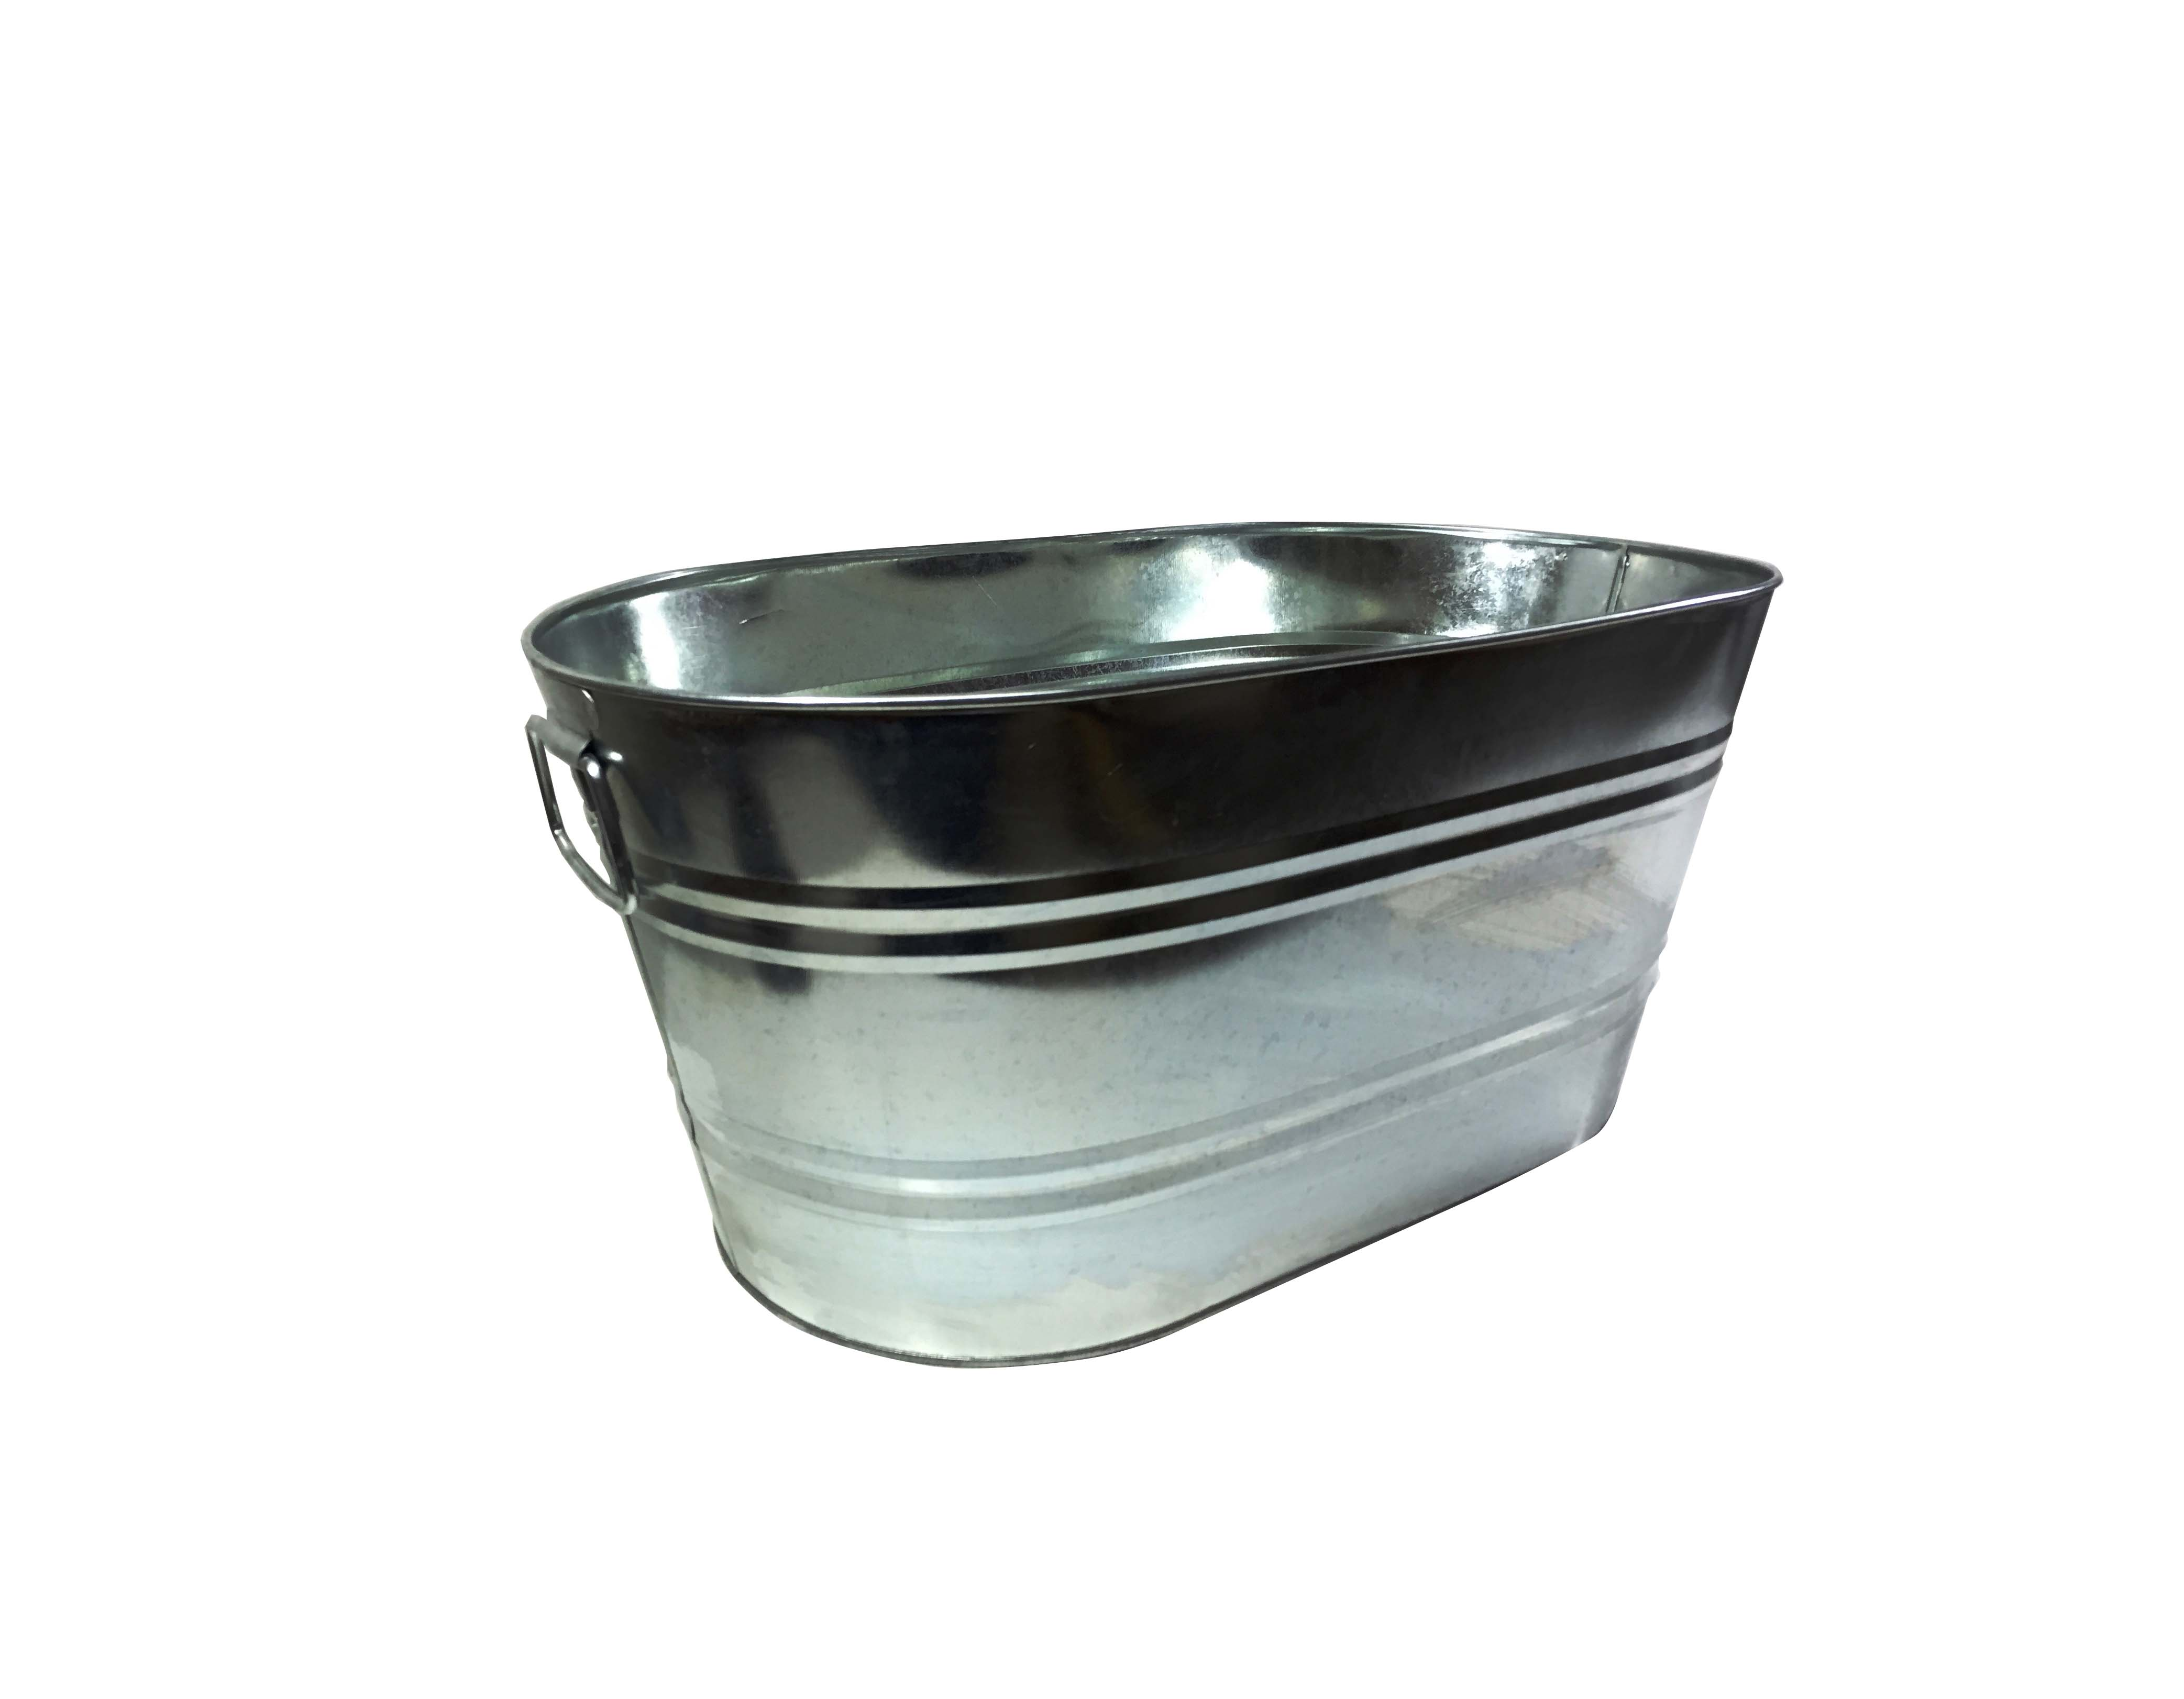 tubs small metal post galvanized flower ideas for beginners planters pails garden containers as unique amp of tub buckets